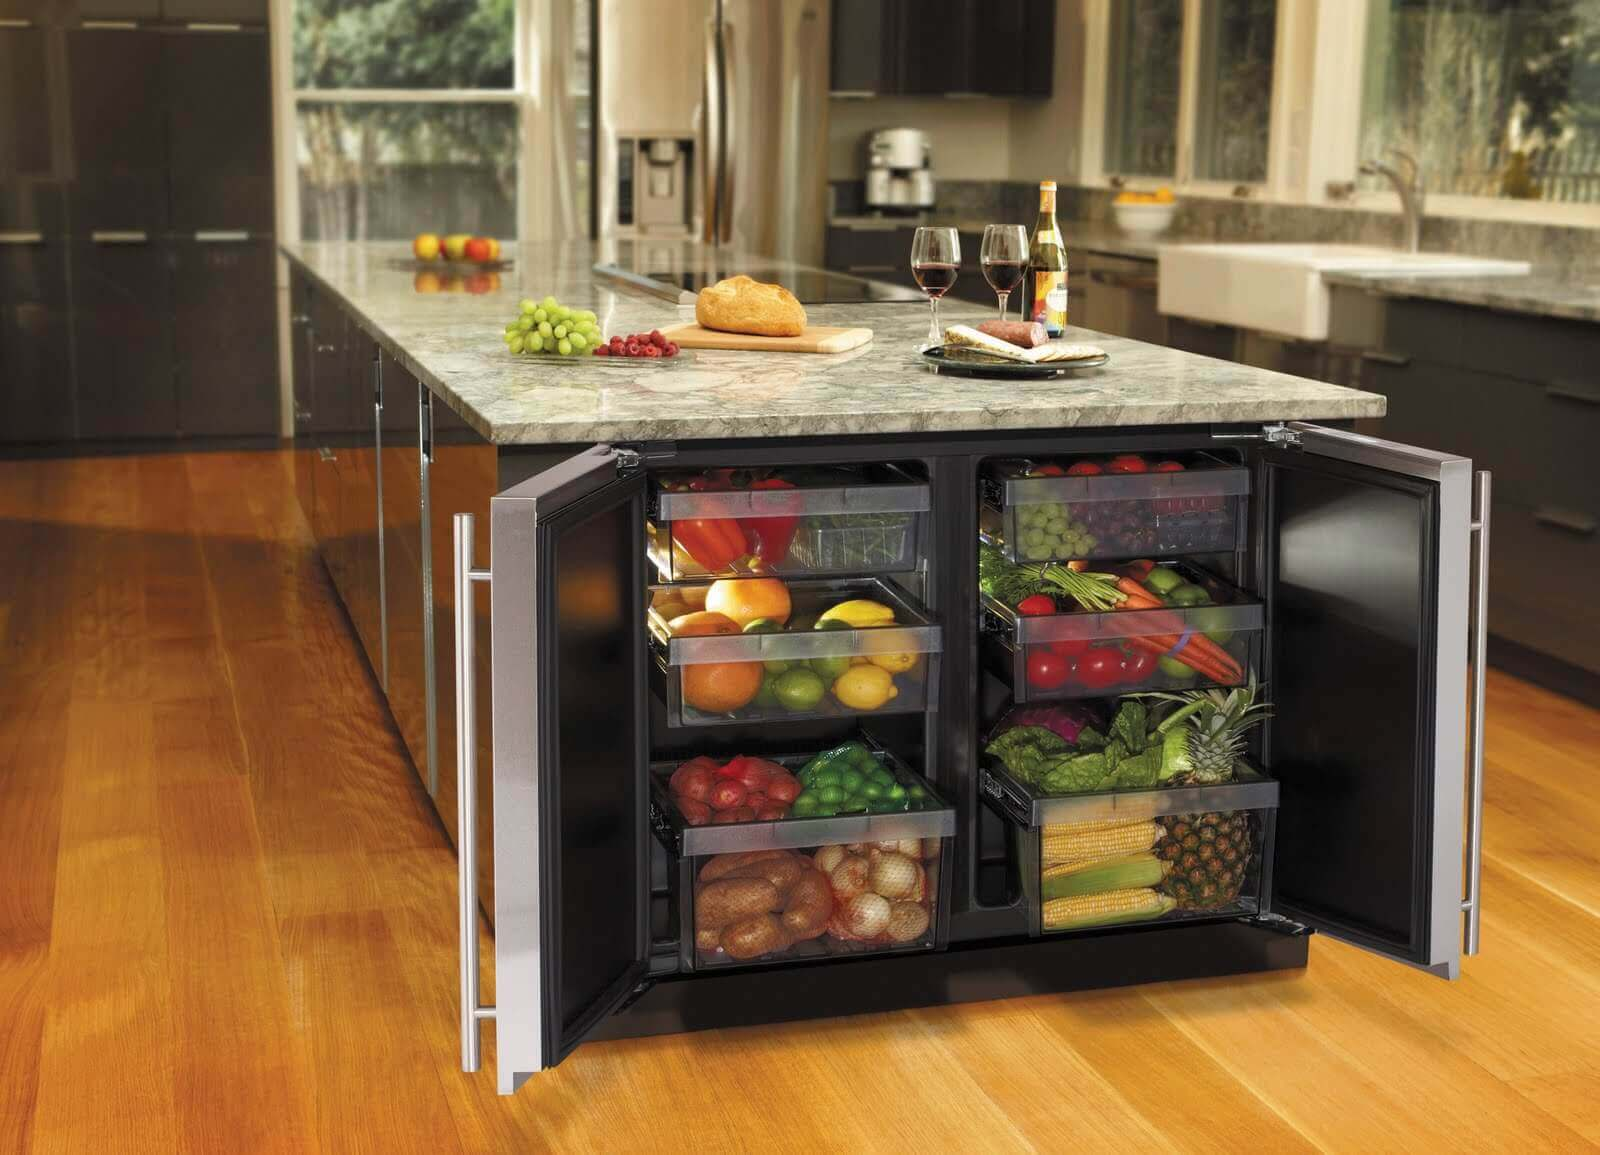 This elegant kitchen island with fridge includes a granite countertop, double range–top, a beverage center, and a dual door fridge. Aluminium base gives it a more modern, luxurious look